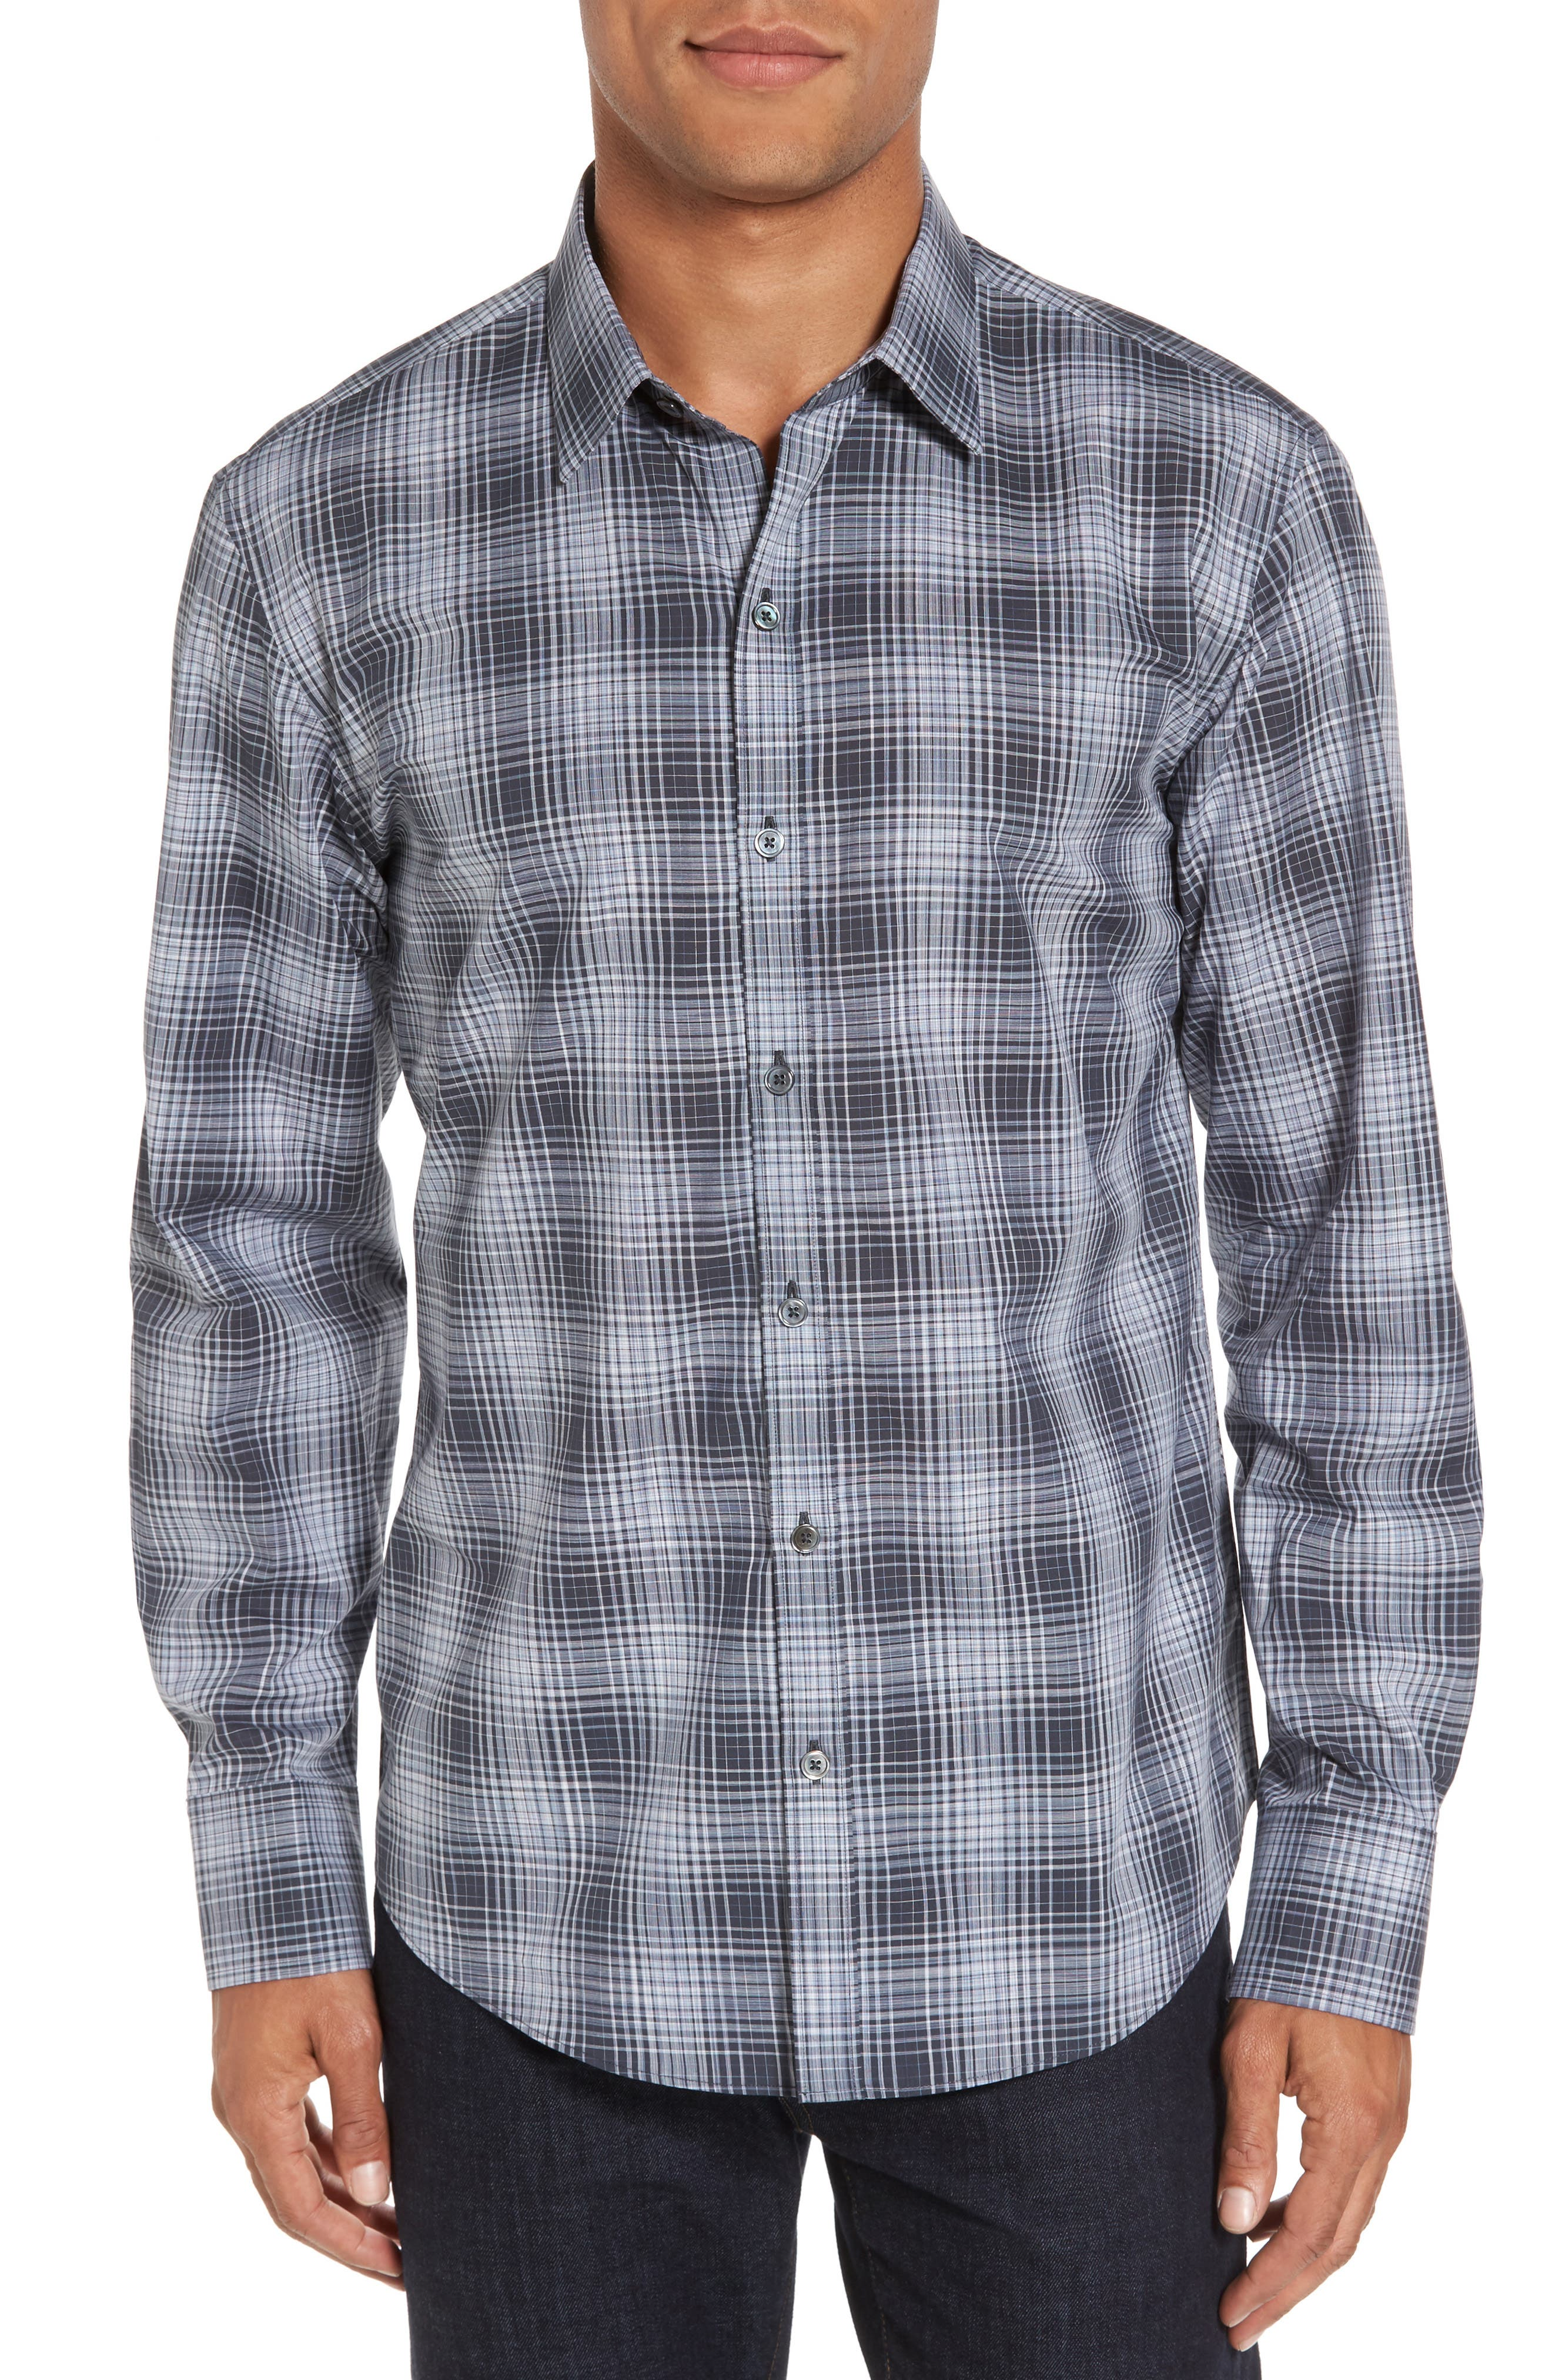 Zander Check Sport Shirt,                             Main thumbnail 1, color,                             021